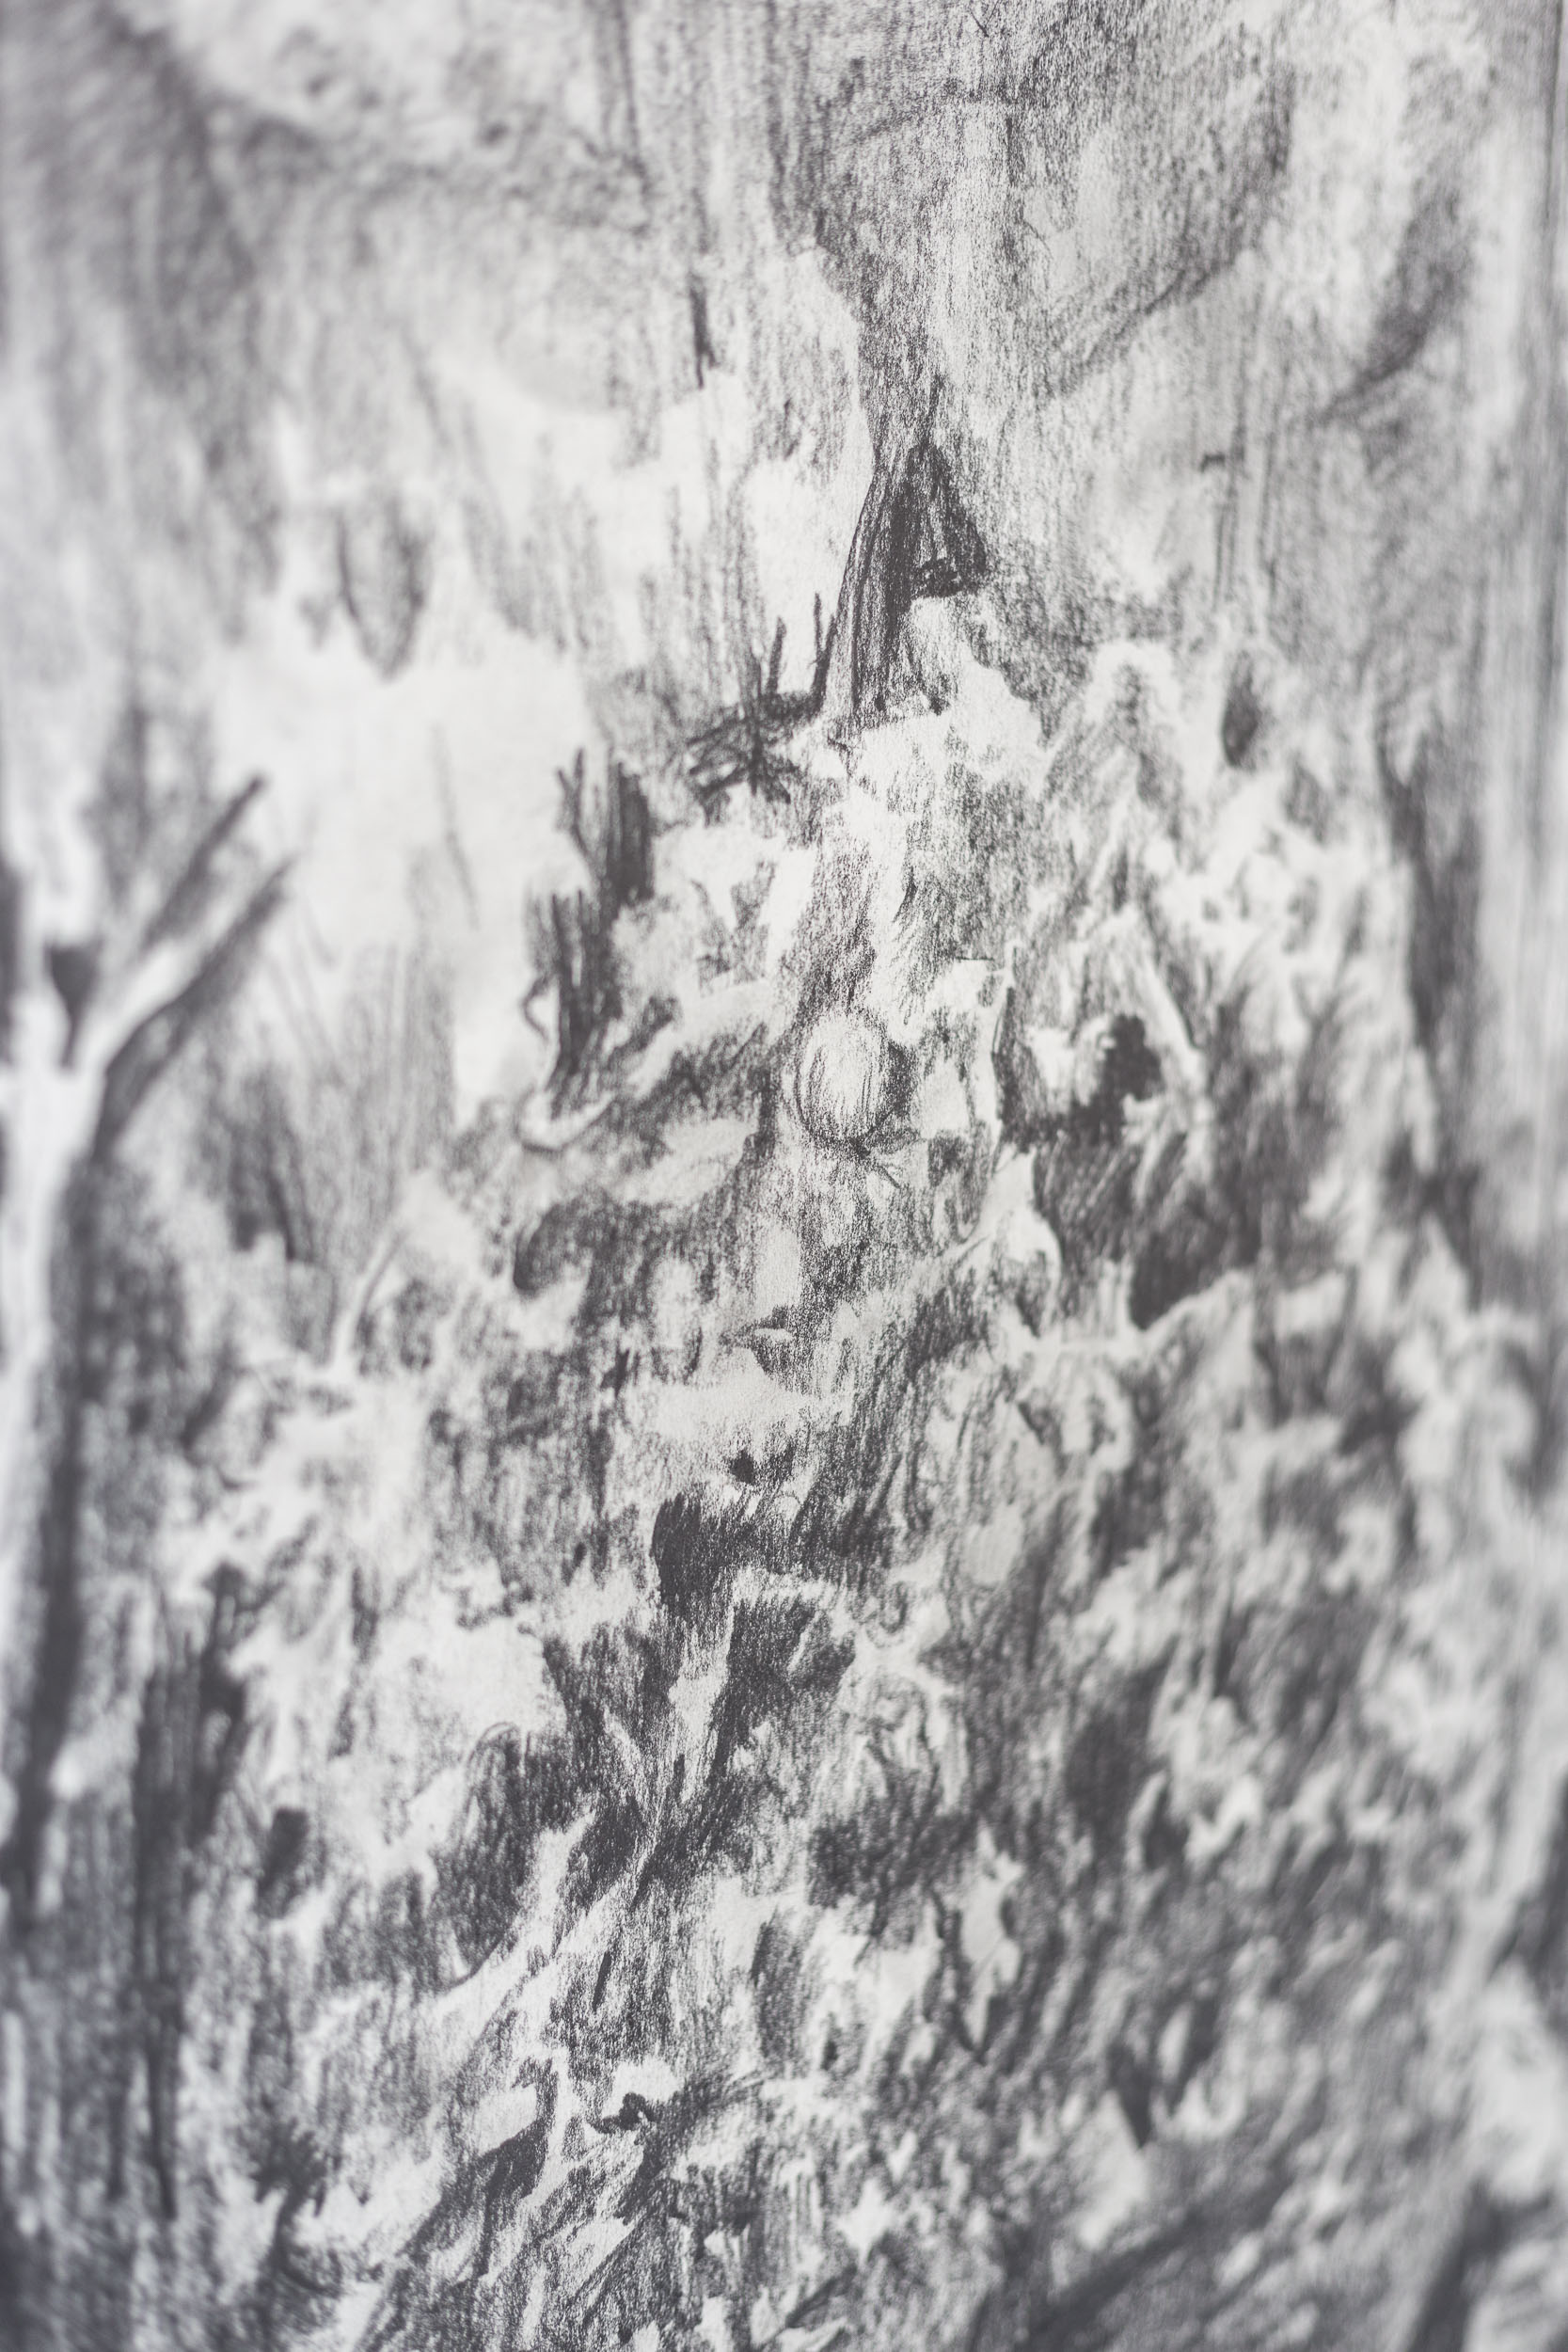 Peter Voss-Knude,  Jungle seen out of the window of a police car  (detail), 2011, pencil on paper, ca. 90 x 100cm  Photo: Kilian Bannwart